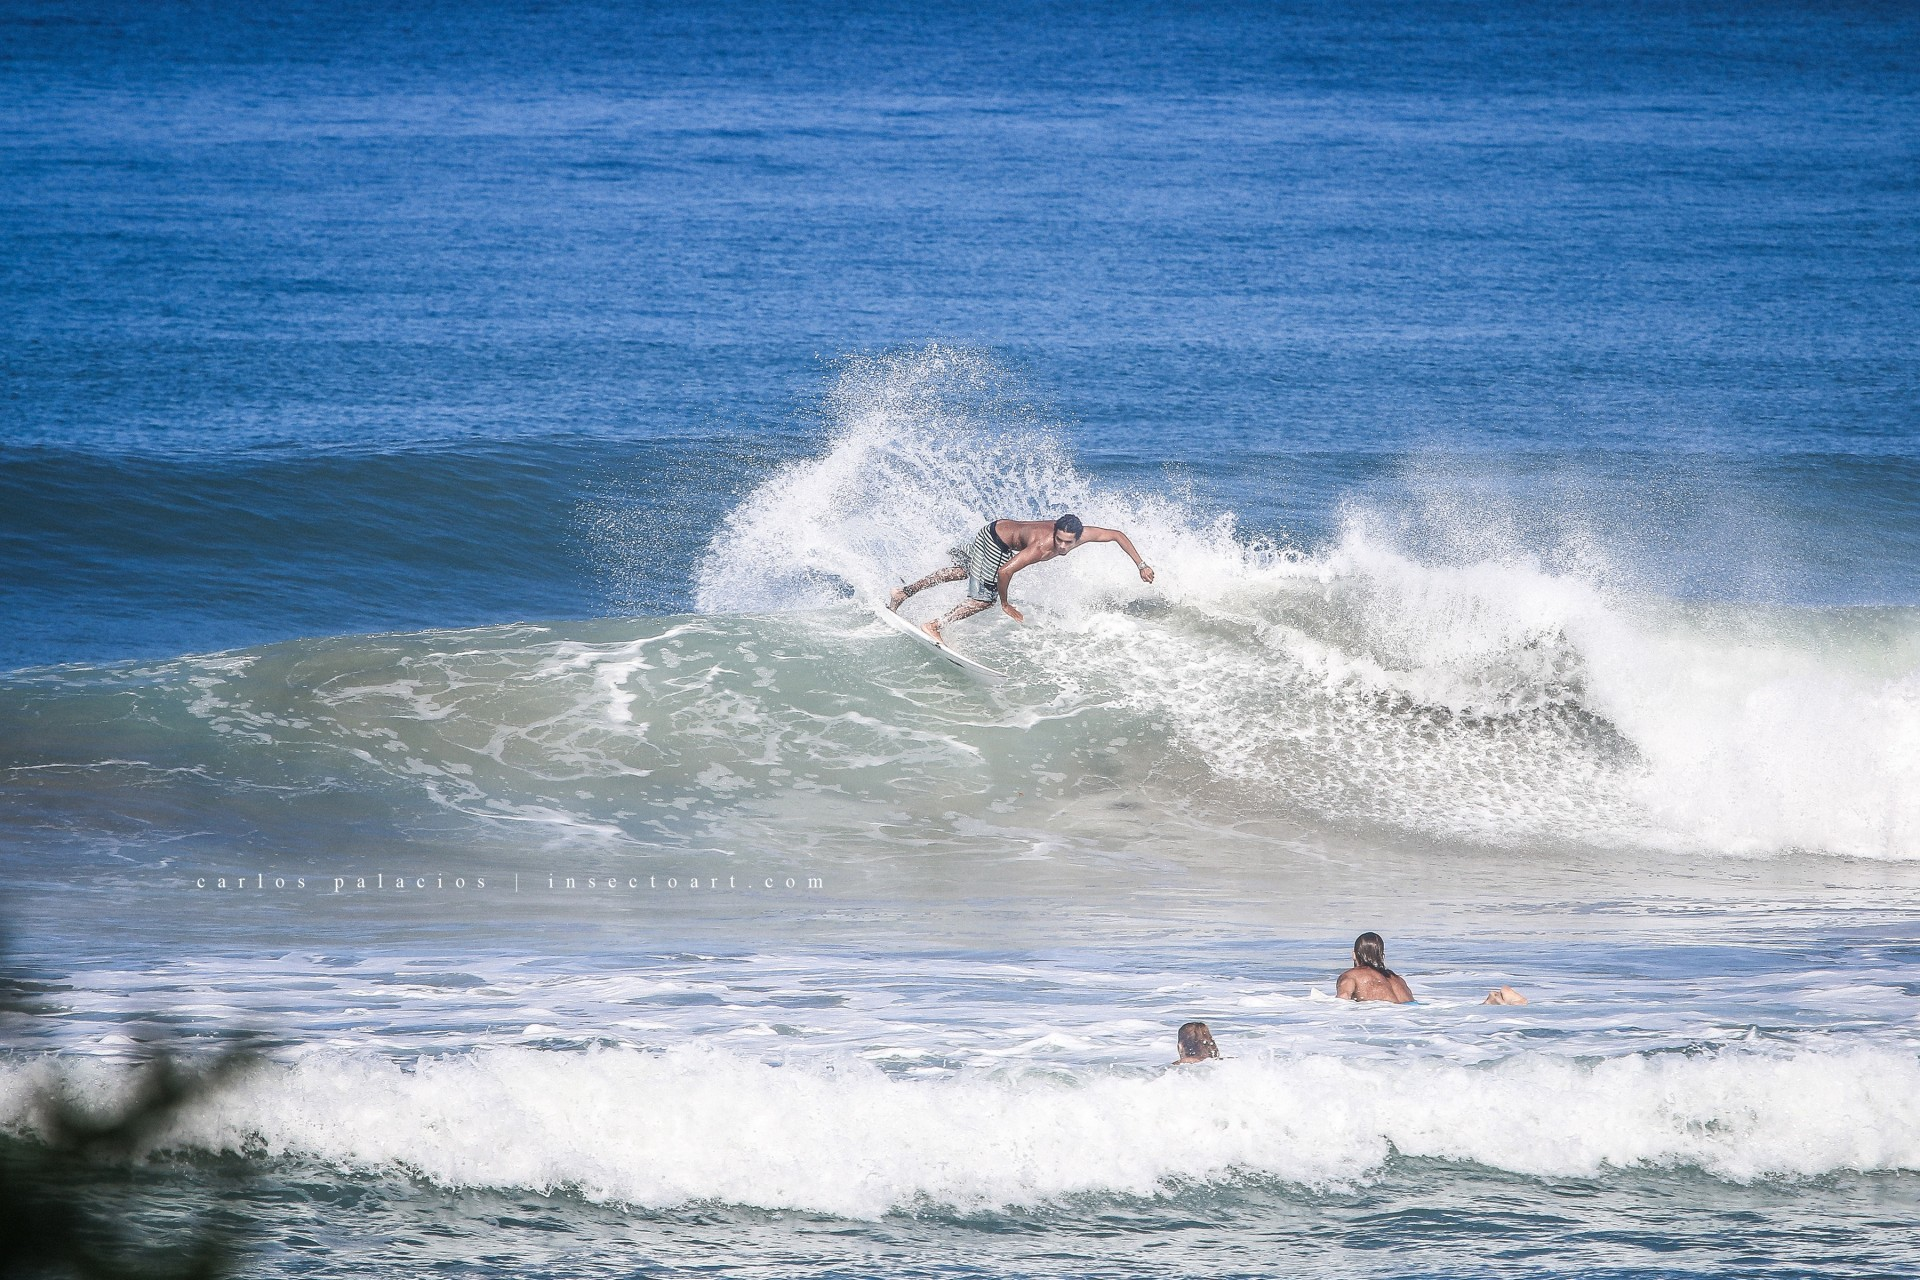 CARLOS PALACIOS SURF PHOTOGRAPHY's photo of Playa Santa Teresa